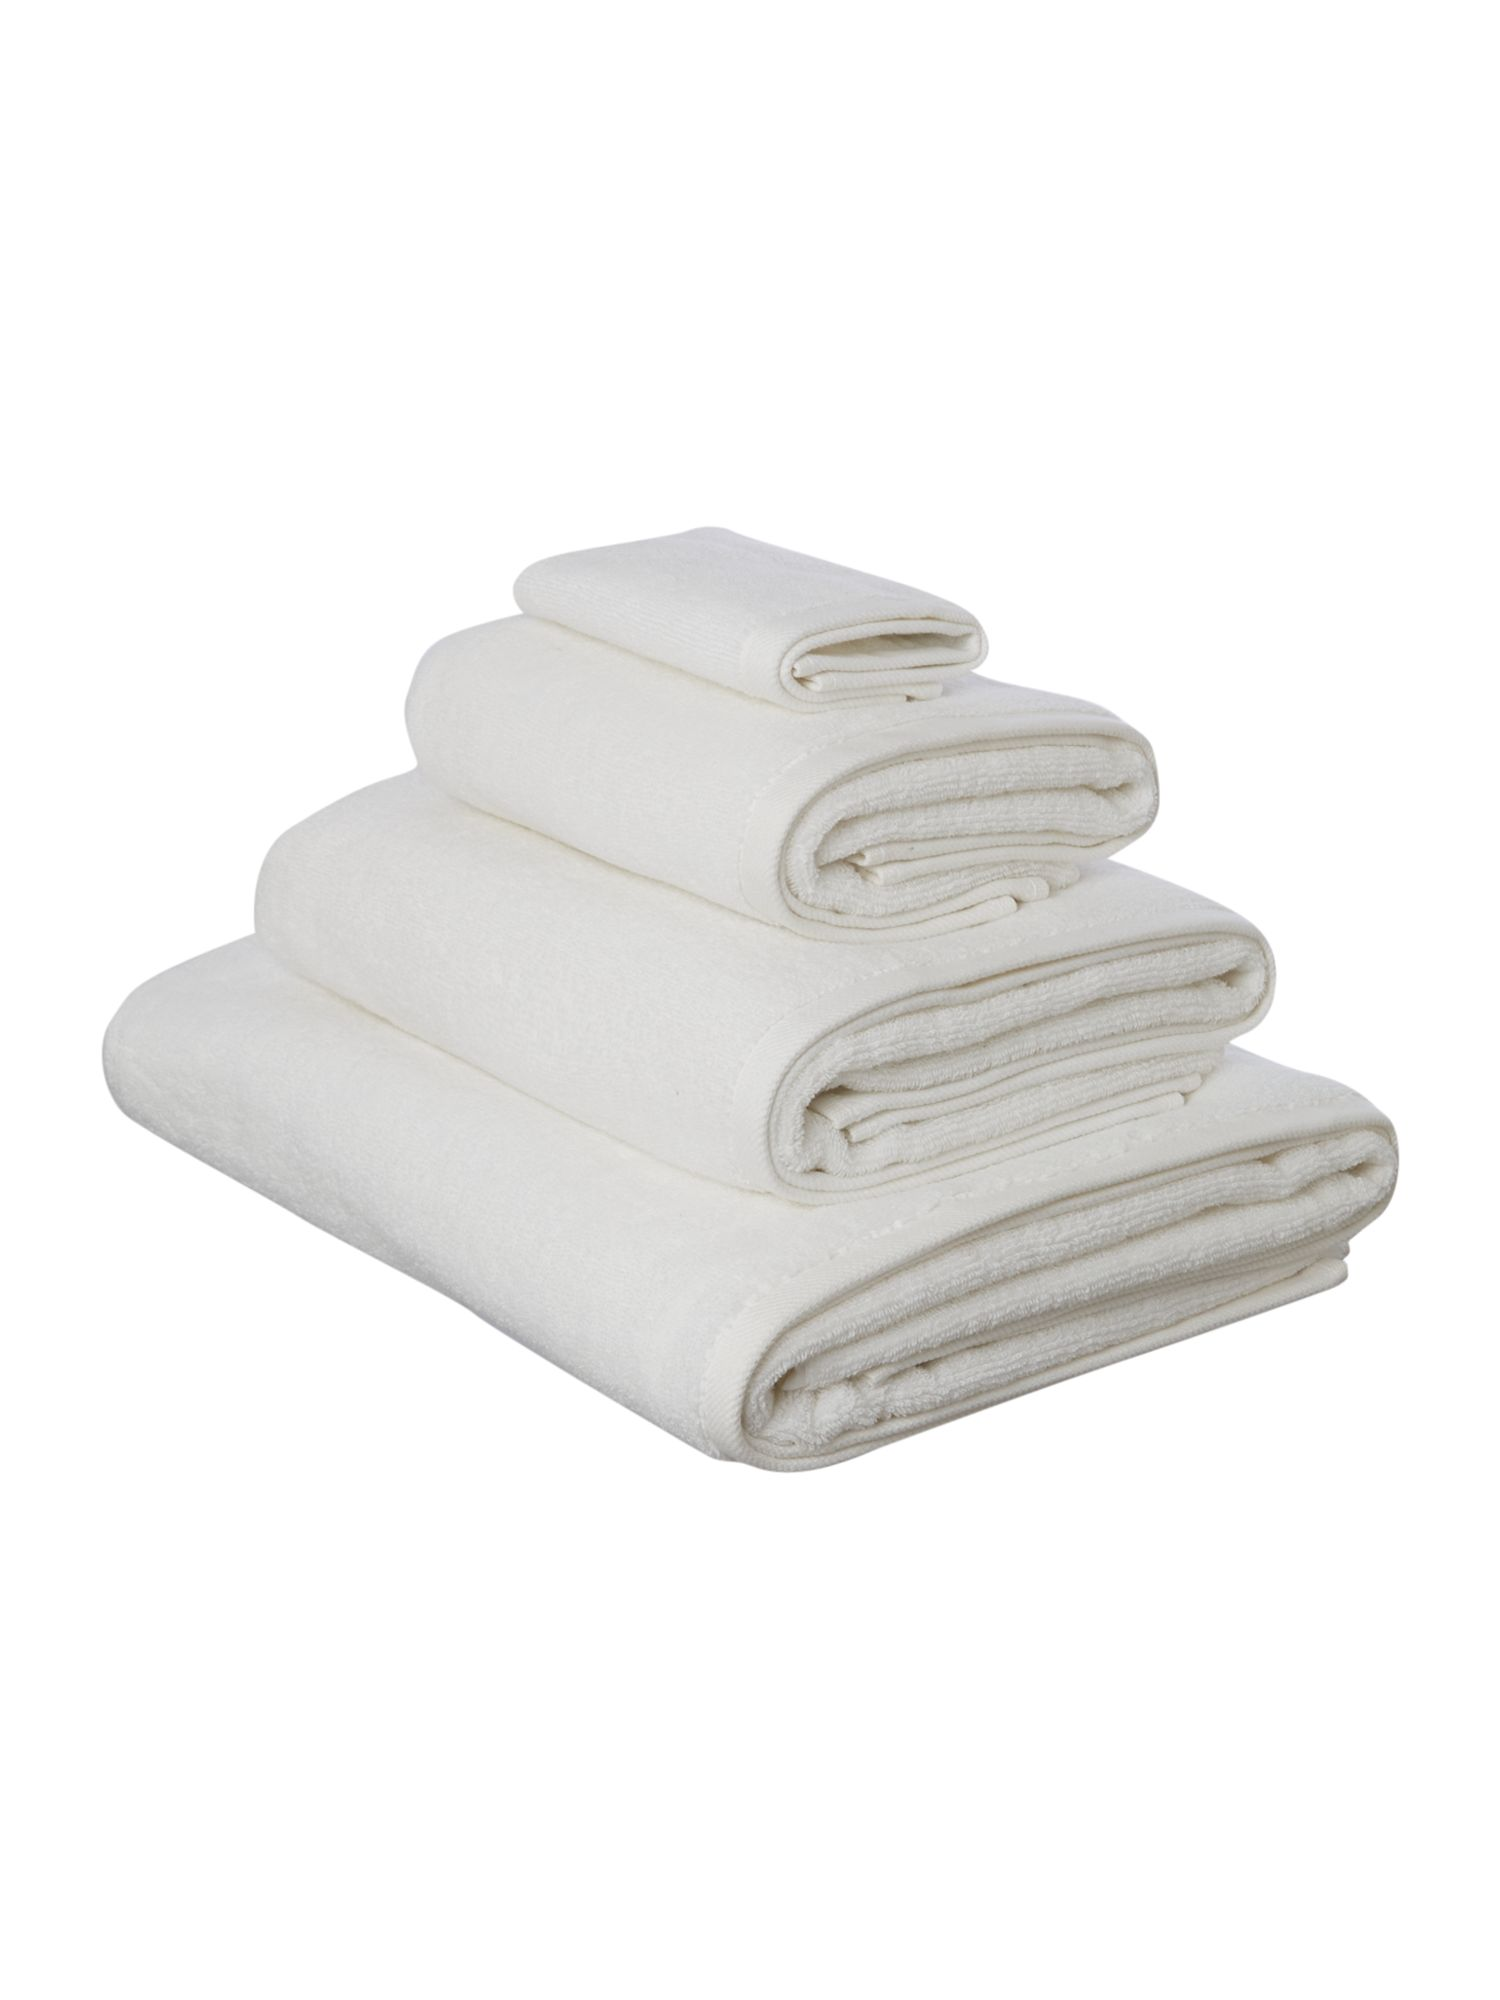 Simply soft white towels